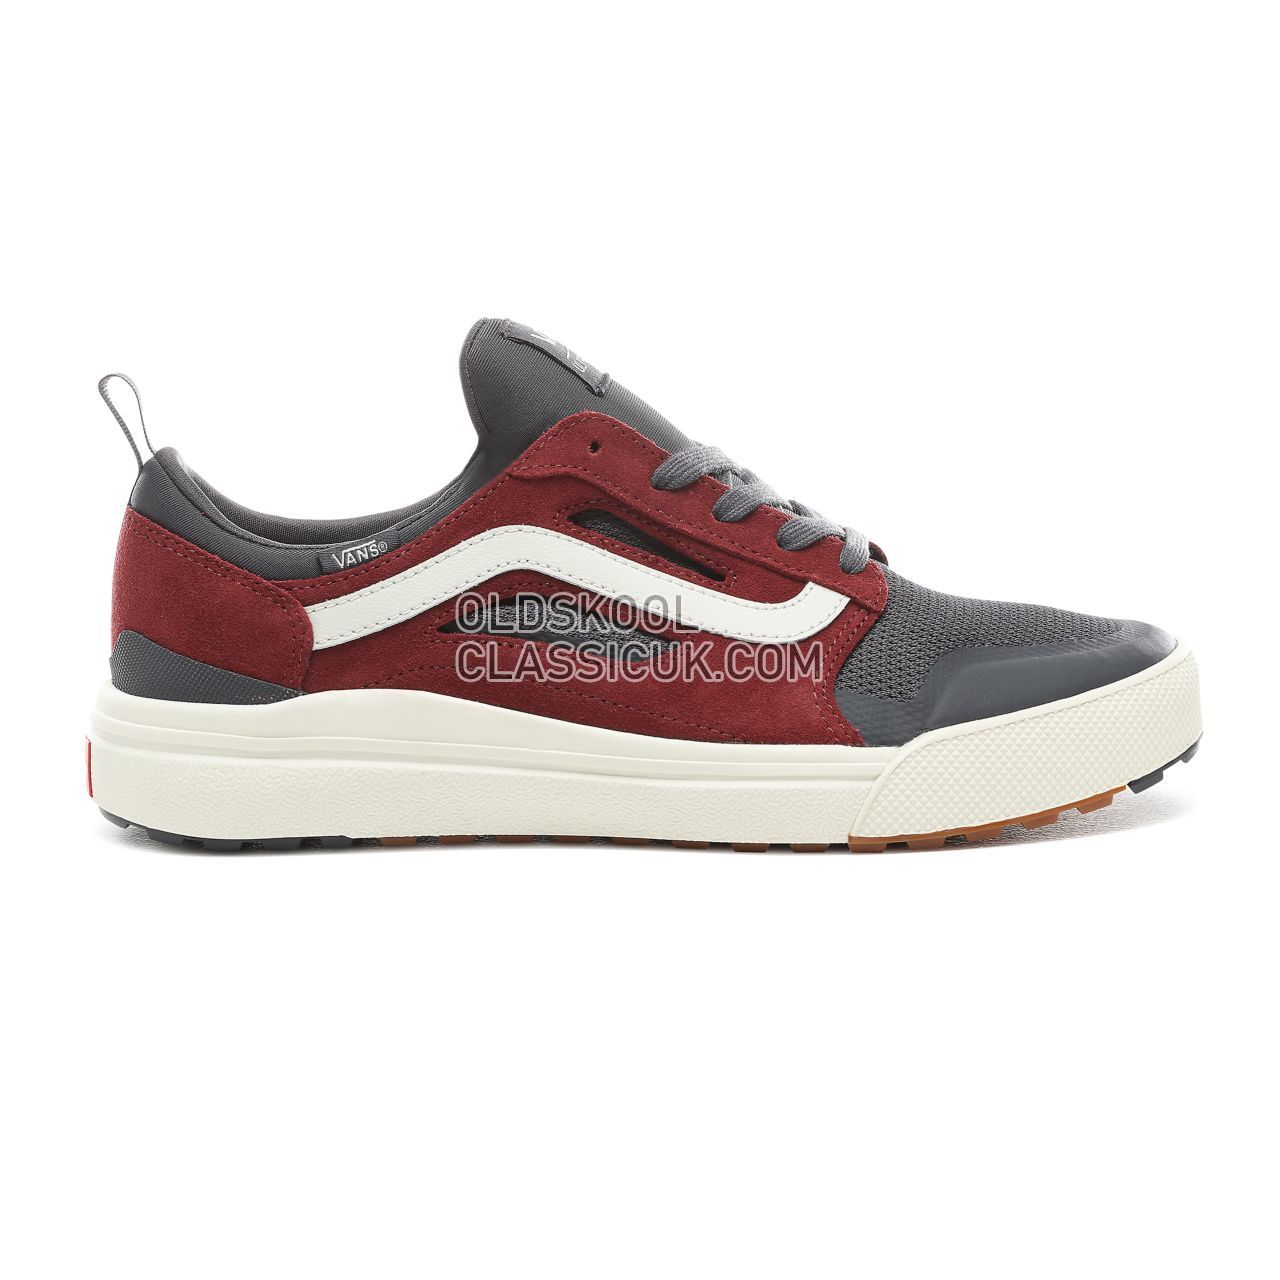 f467b2bb9152 Vans Ultrarange 3D Sneakers Mens Port Ebony VN0A3TKWVU2 Shoes - £86